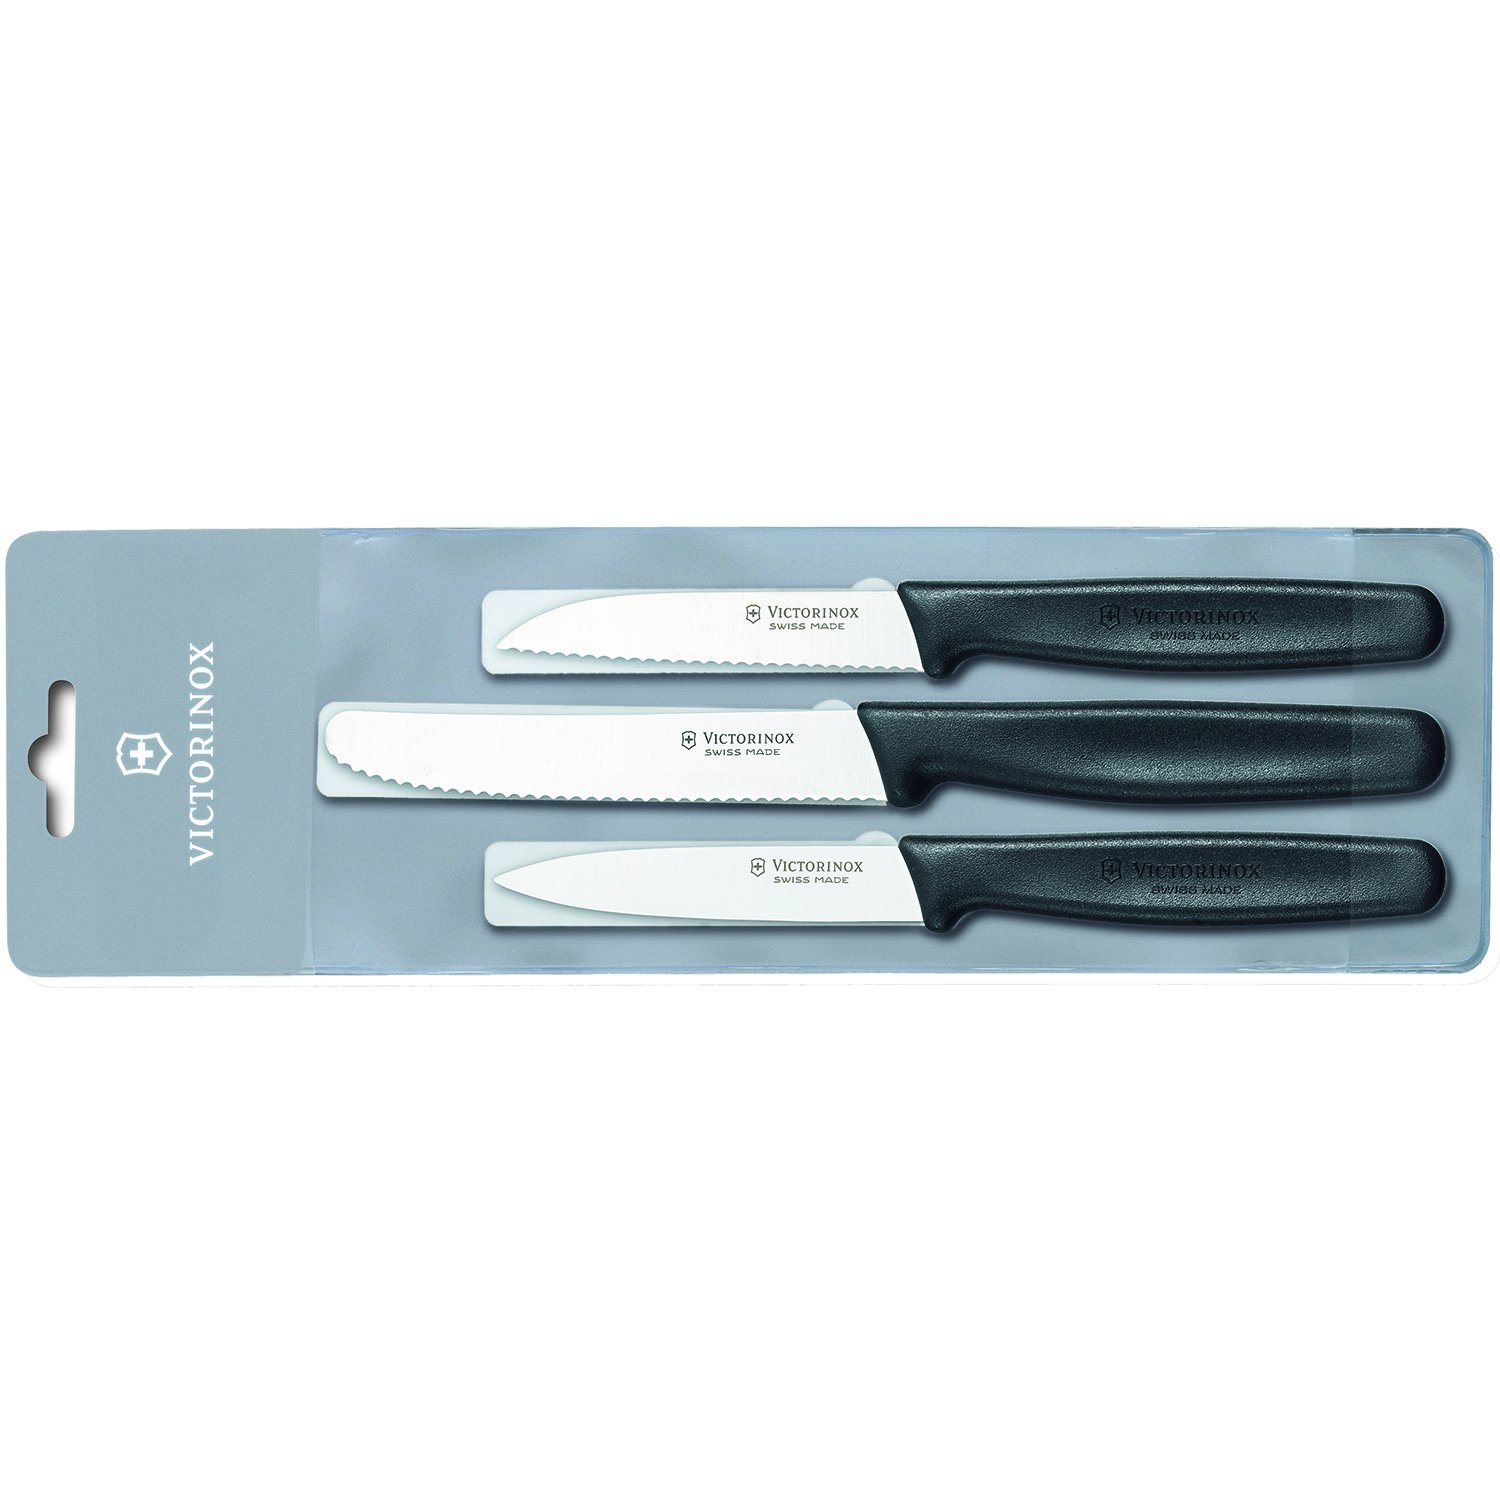 Victorinox Plastic Handle Set Of 3 Parers (Pack of 2)